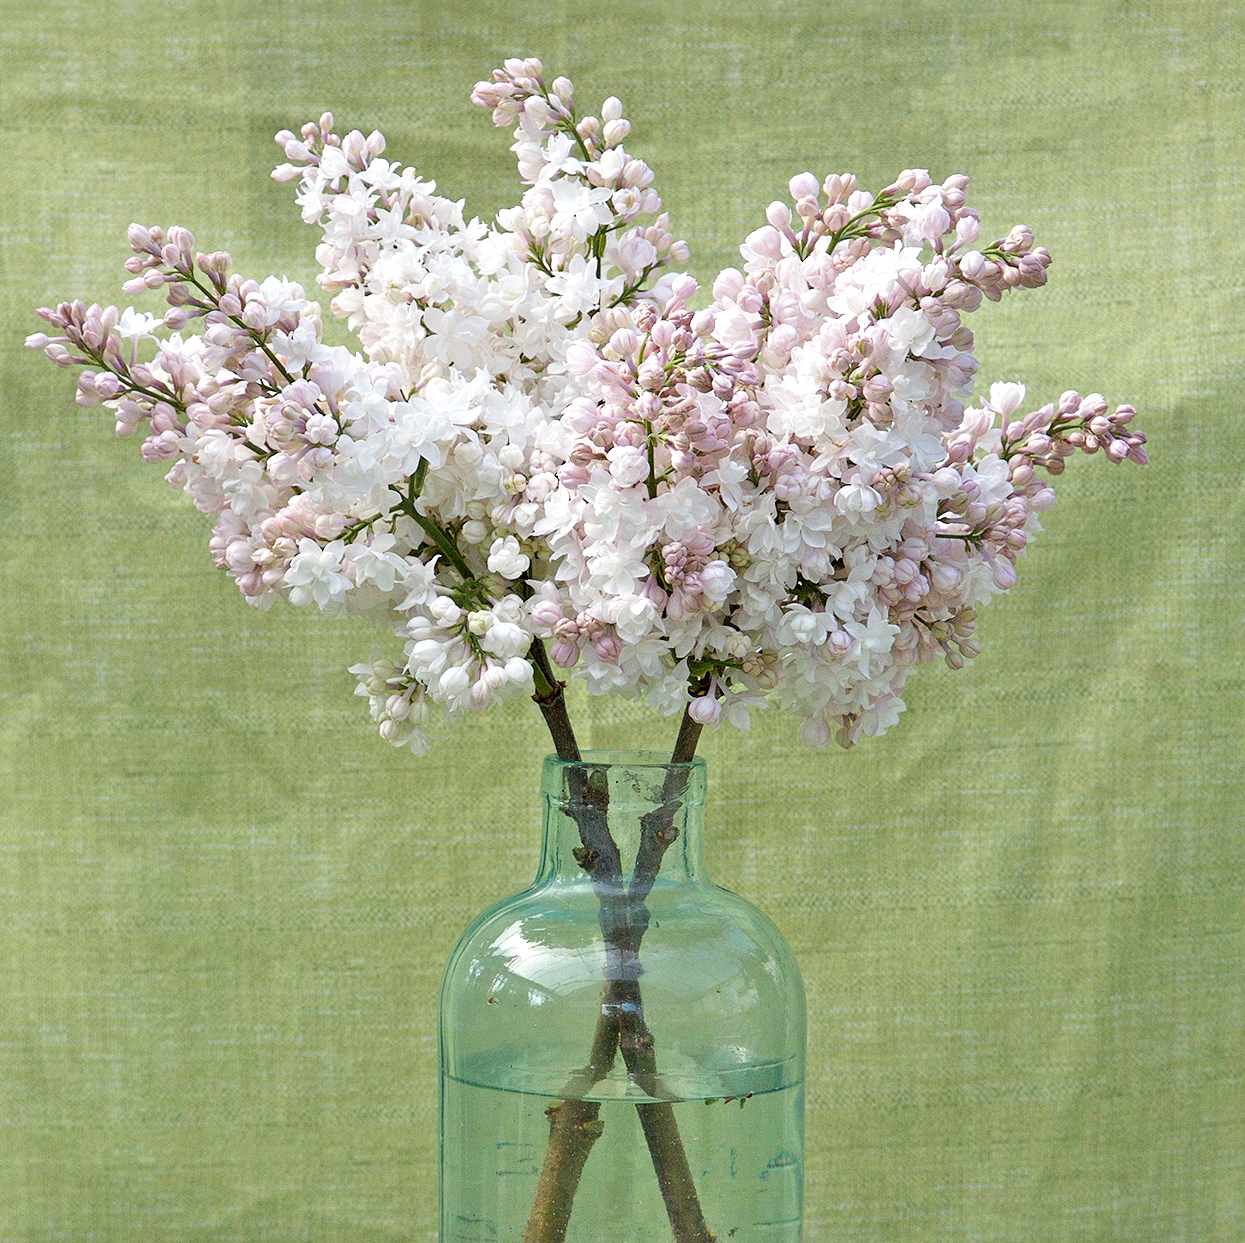 pink Syringa 'Beauty of Moscow' lilac cutting in vase